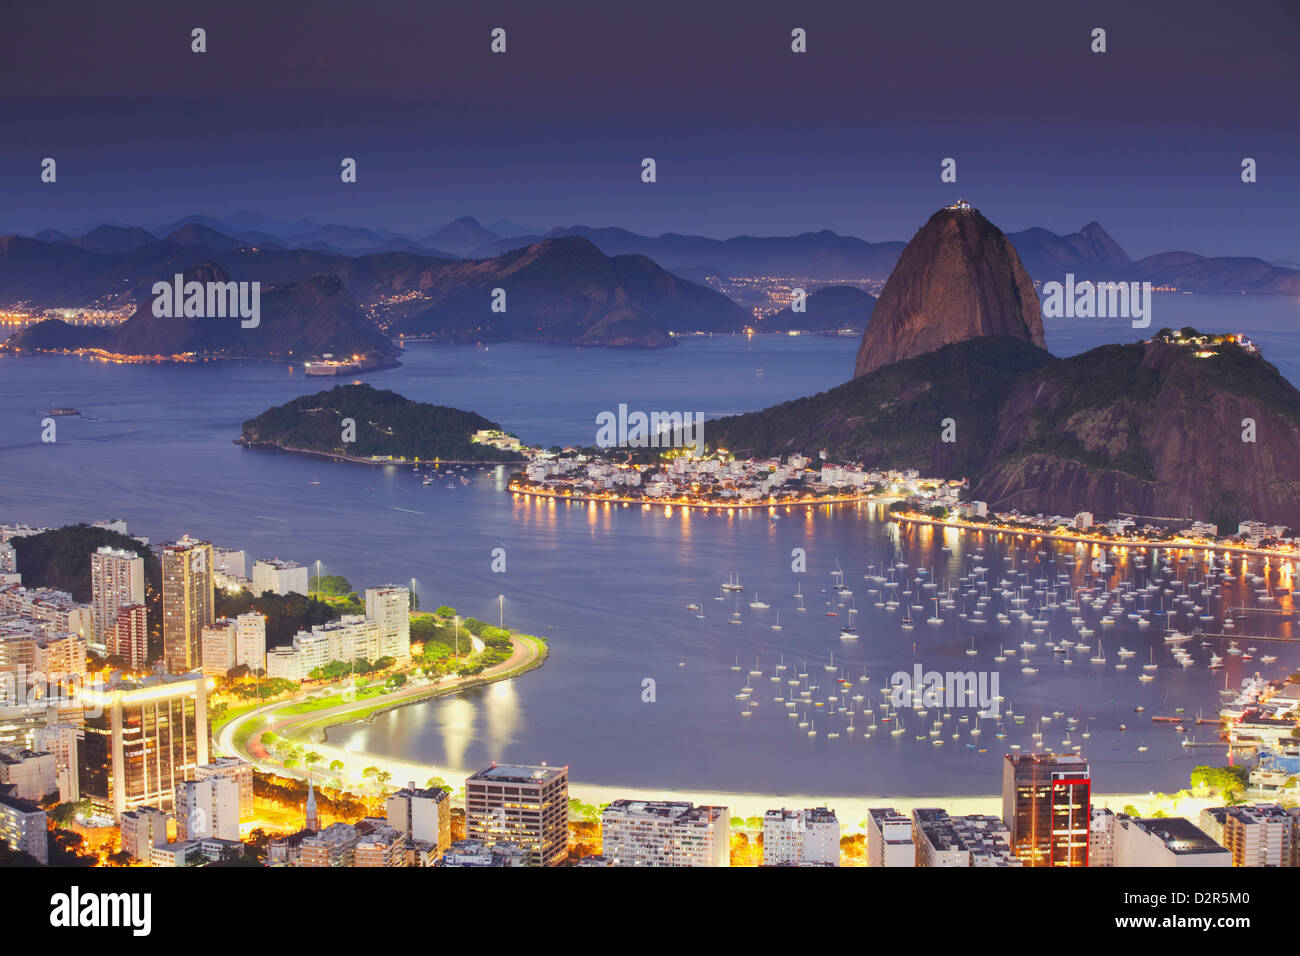 View of Sugar Loaf Mountain (Pao de Acucar) and Botafogo Bay at dusk, Rio de Janeiro, Brazil, South America - Stock Image